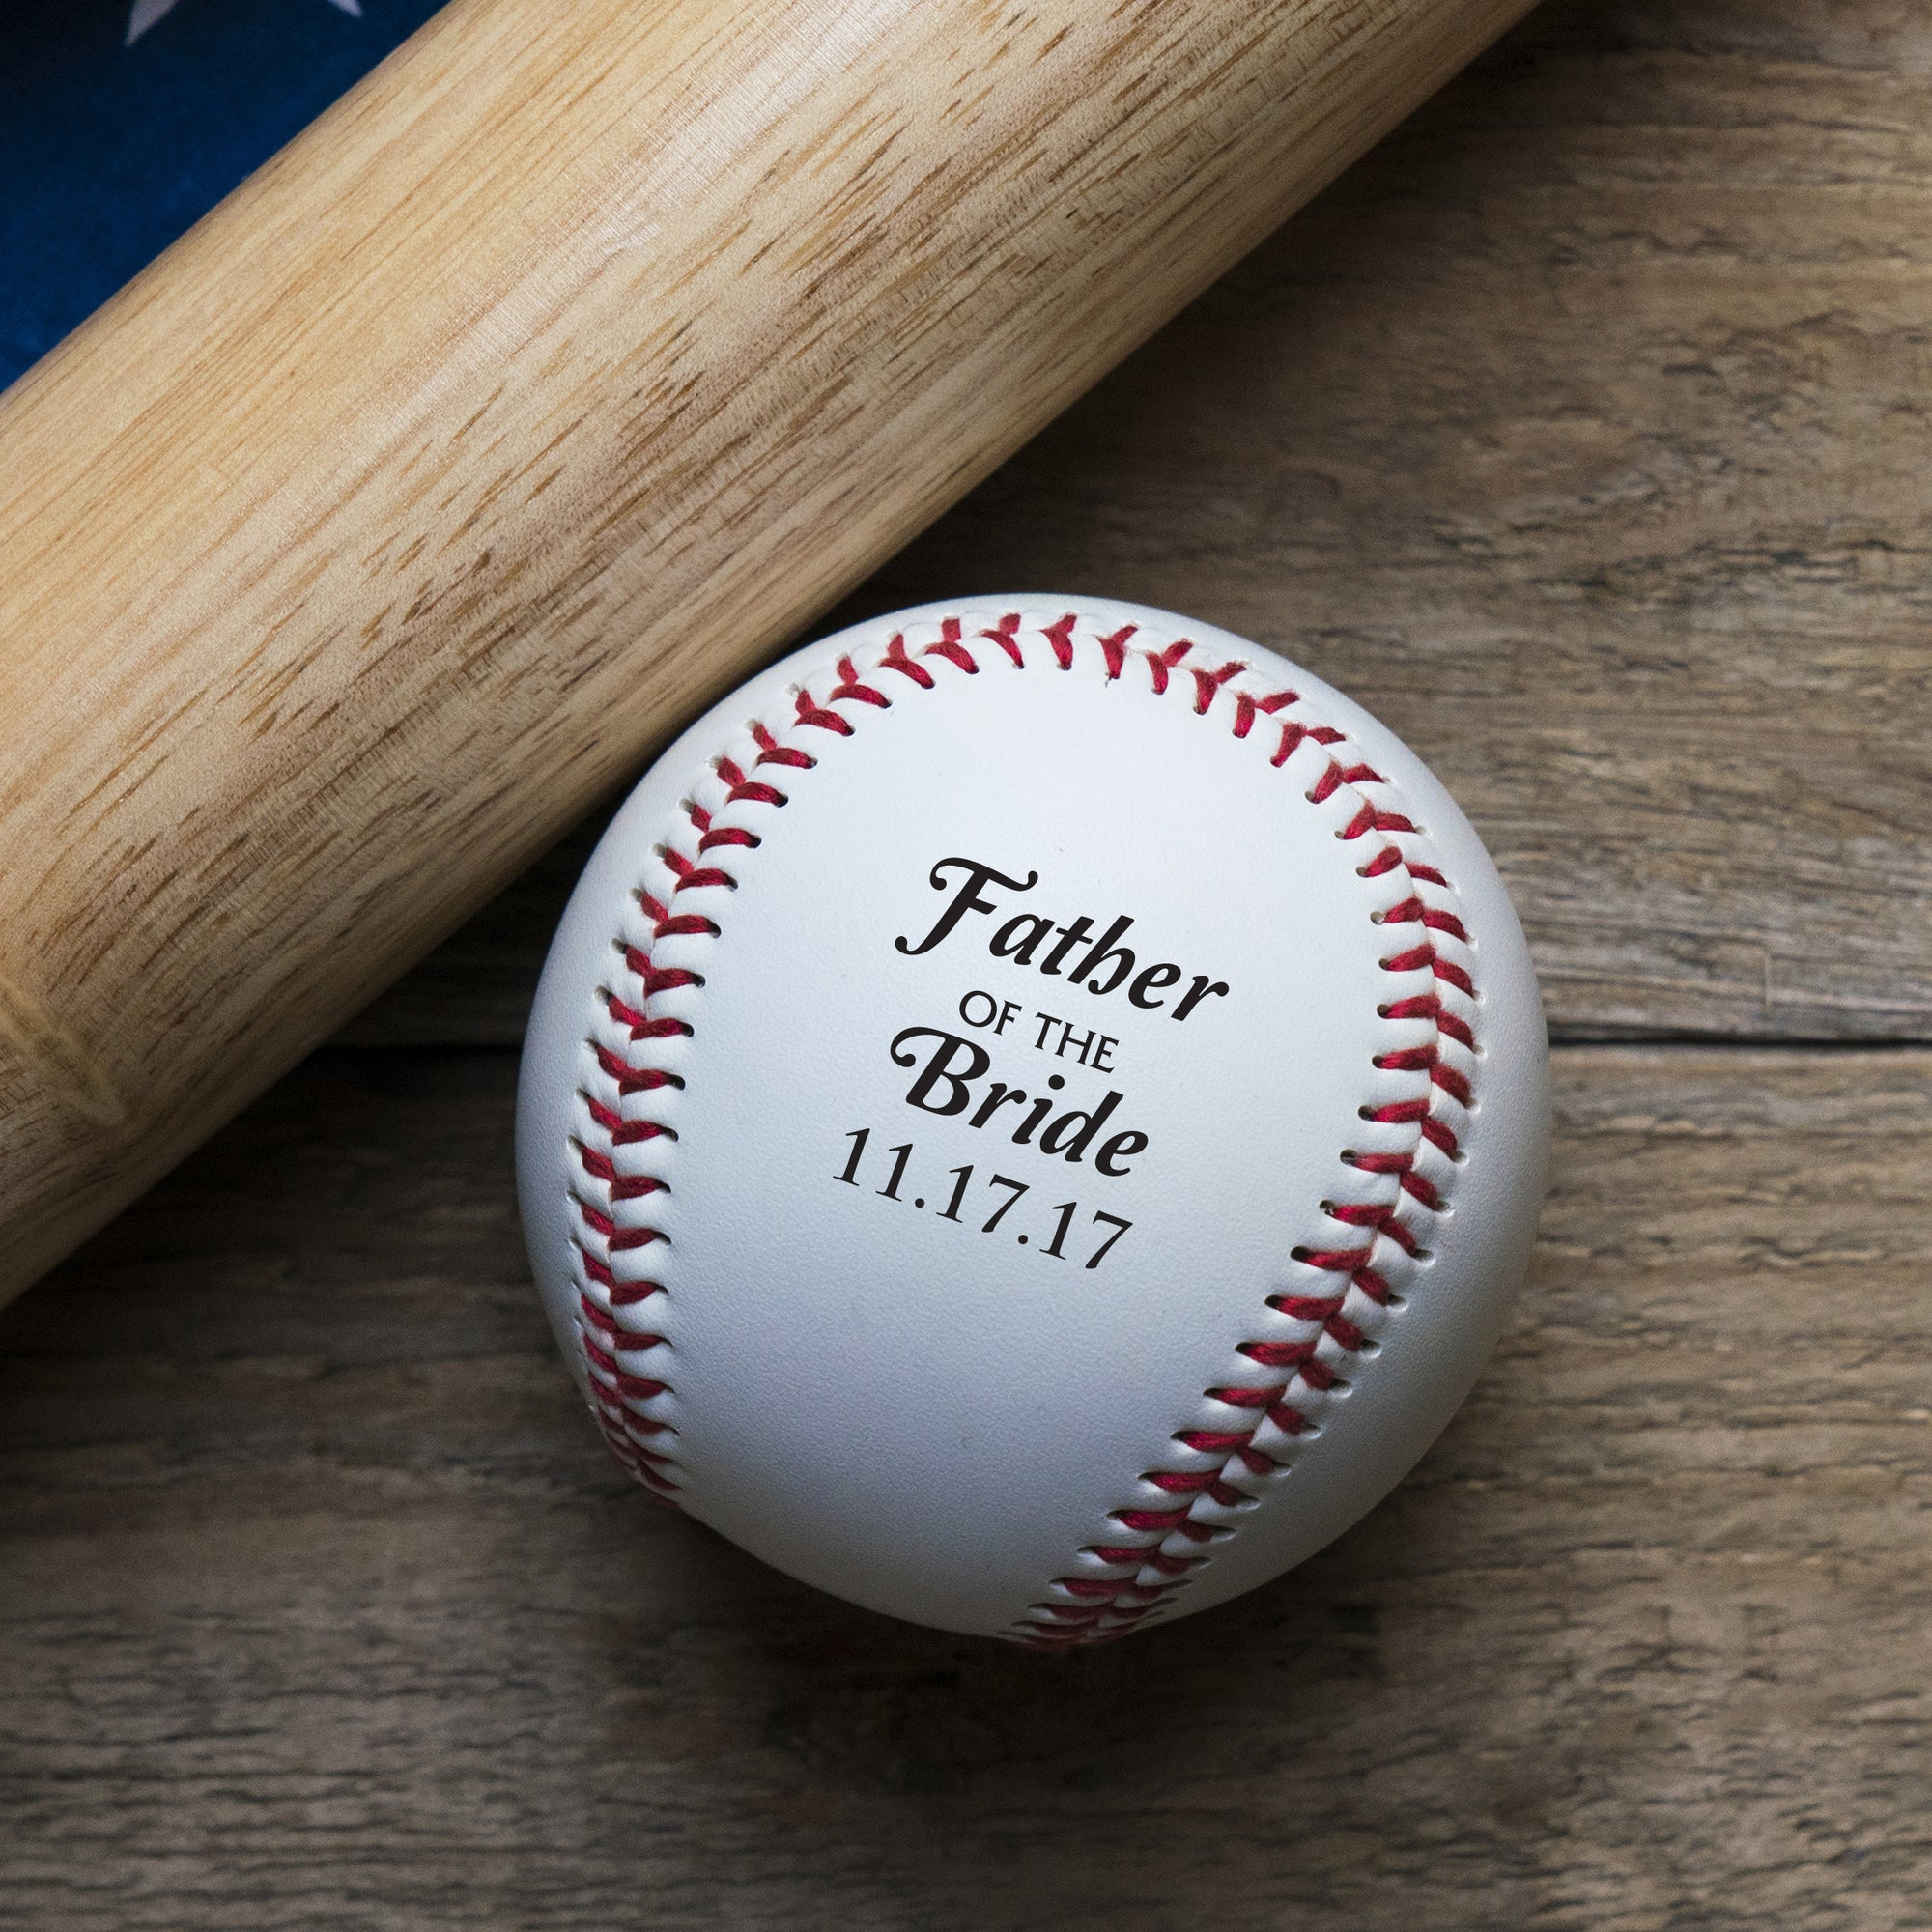 Father of the Bride Baseball